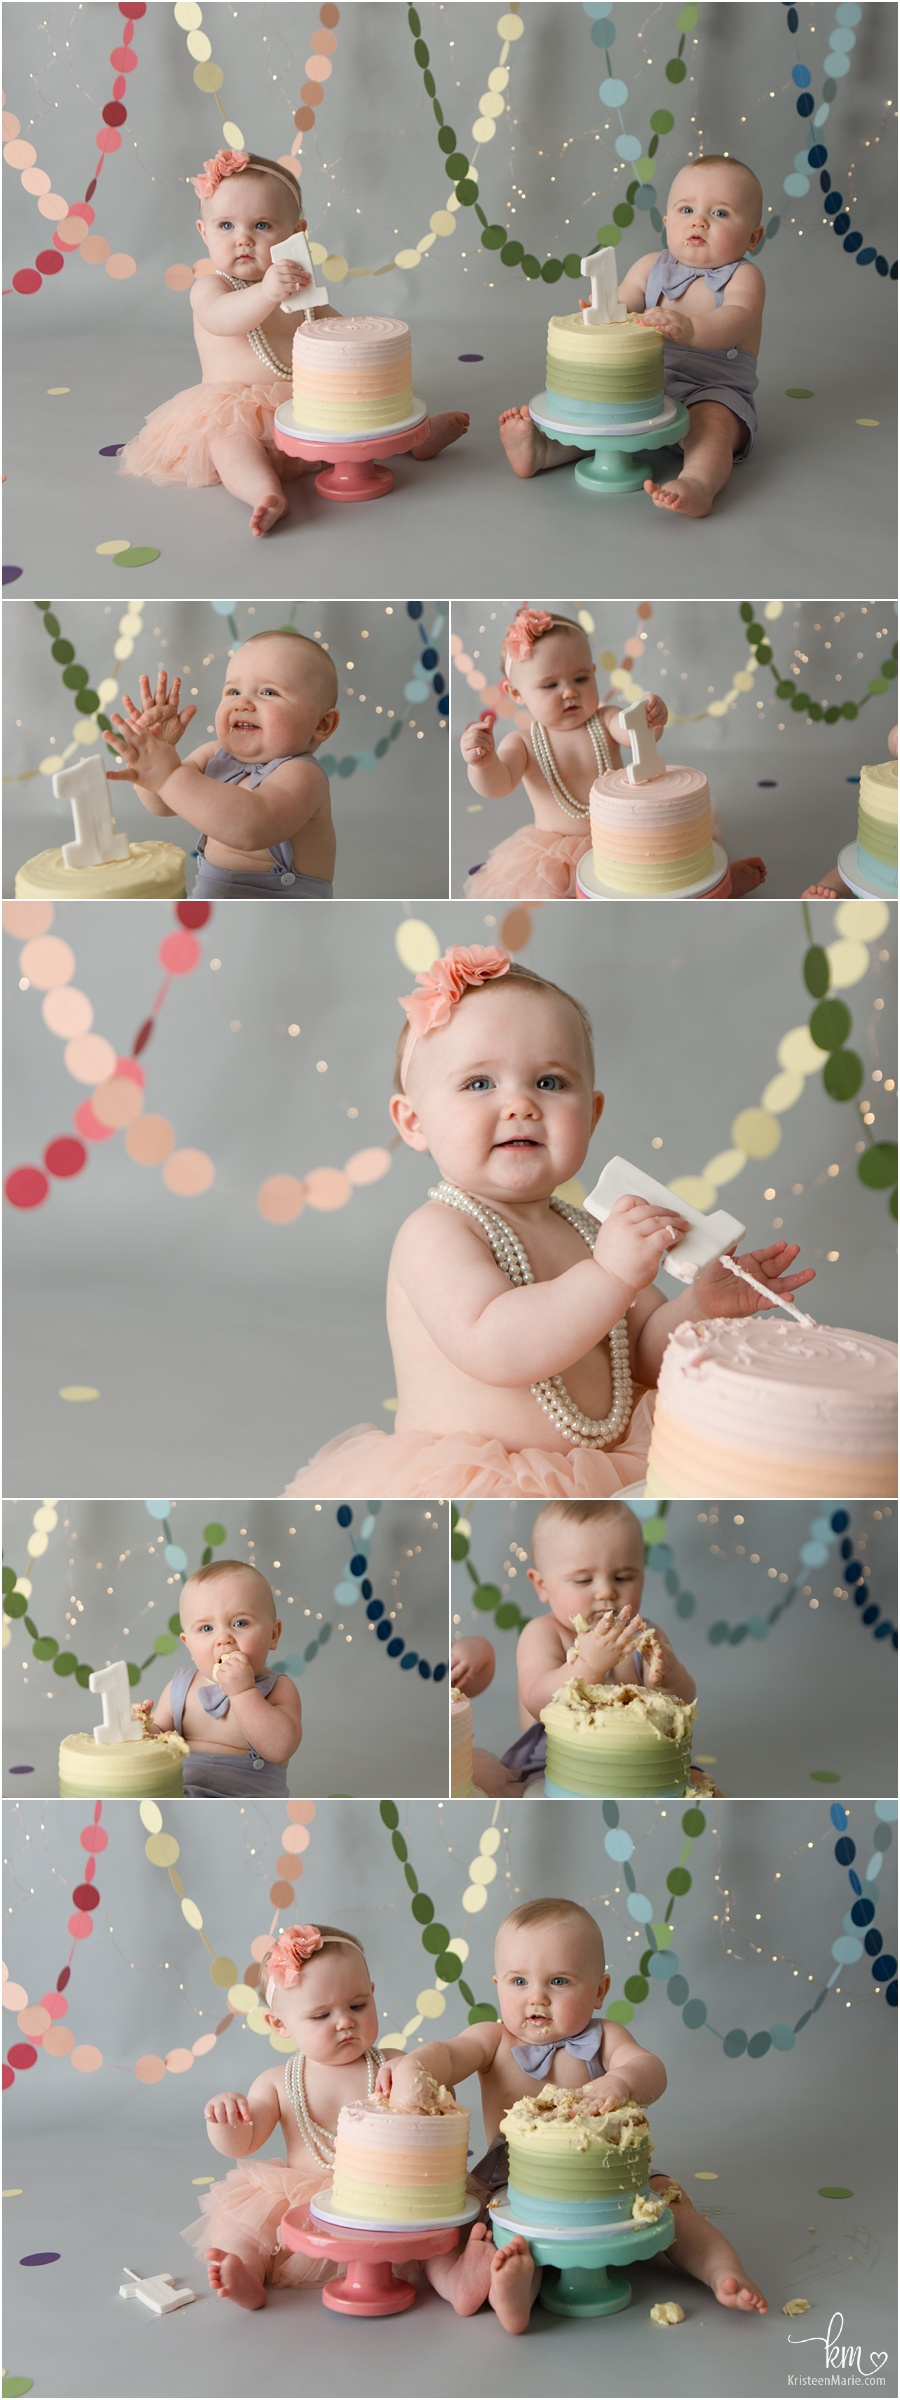 Rainbow themed 1st birthday cake smash session for twins